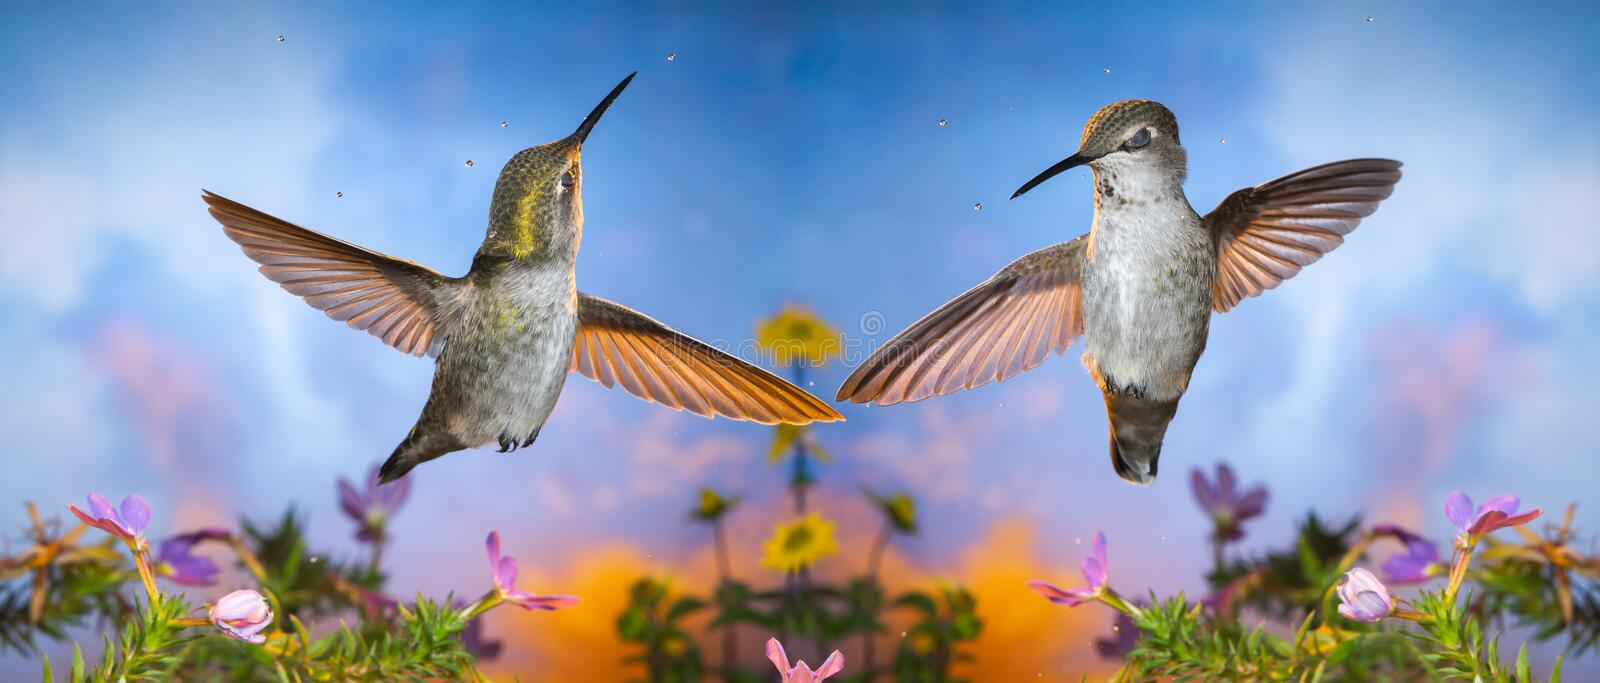 Enjoy dancing in some drizzle with eyes closed. Creative panorama of two hummingbirds who enjoy dancing in the rain with eyes closed royalty free stock photo